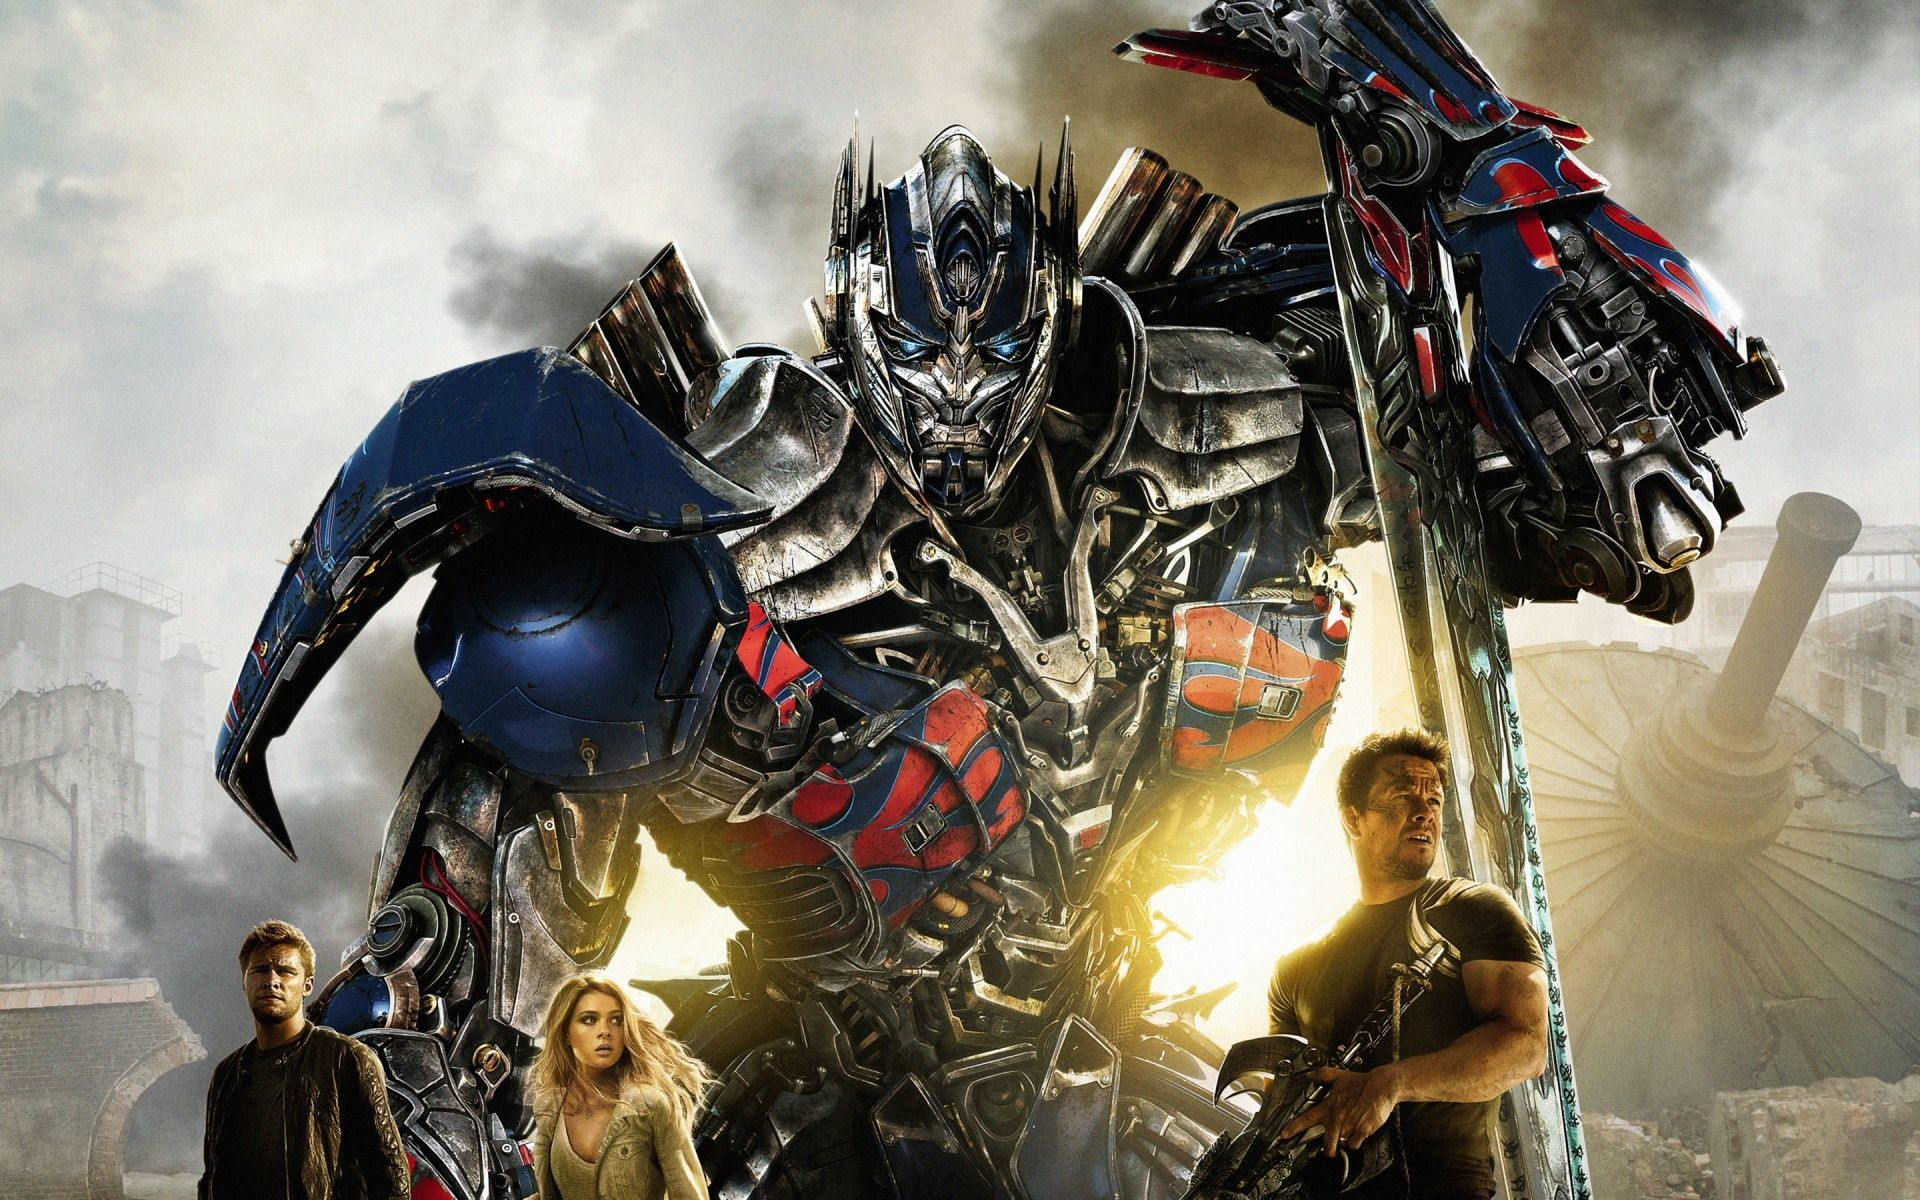 New 2014 Transformers Movie Wallpapers: Transformers Movie Poster Wallpaper  Hd Download 1920x1200px